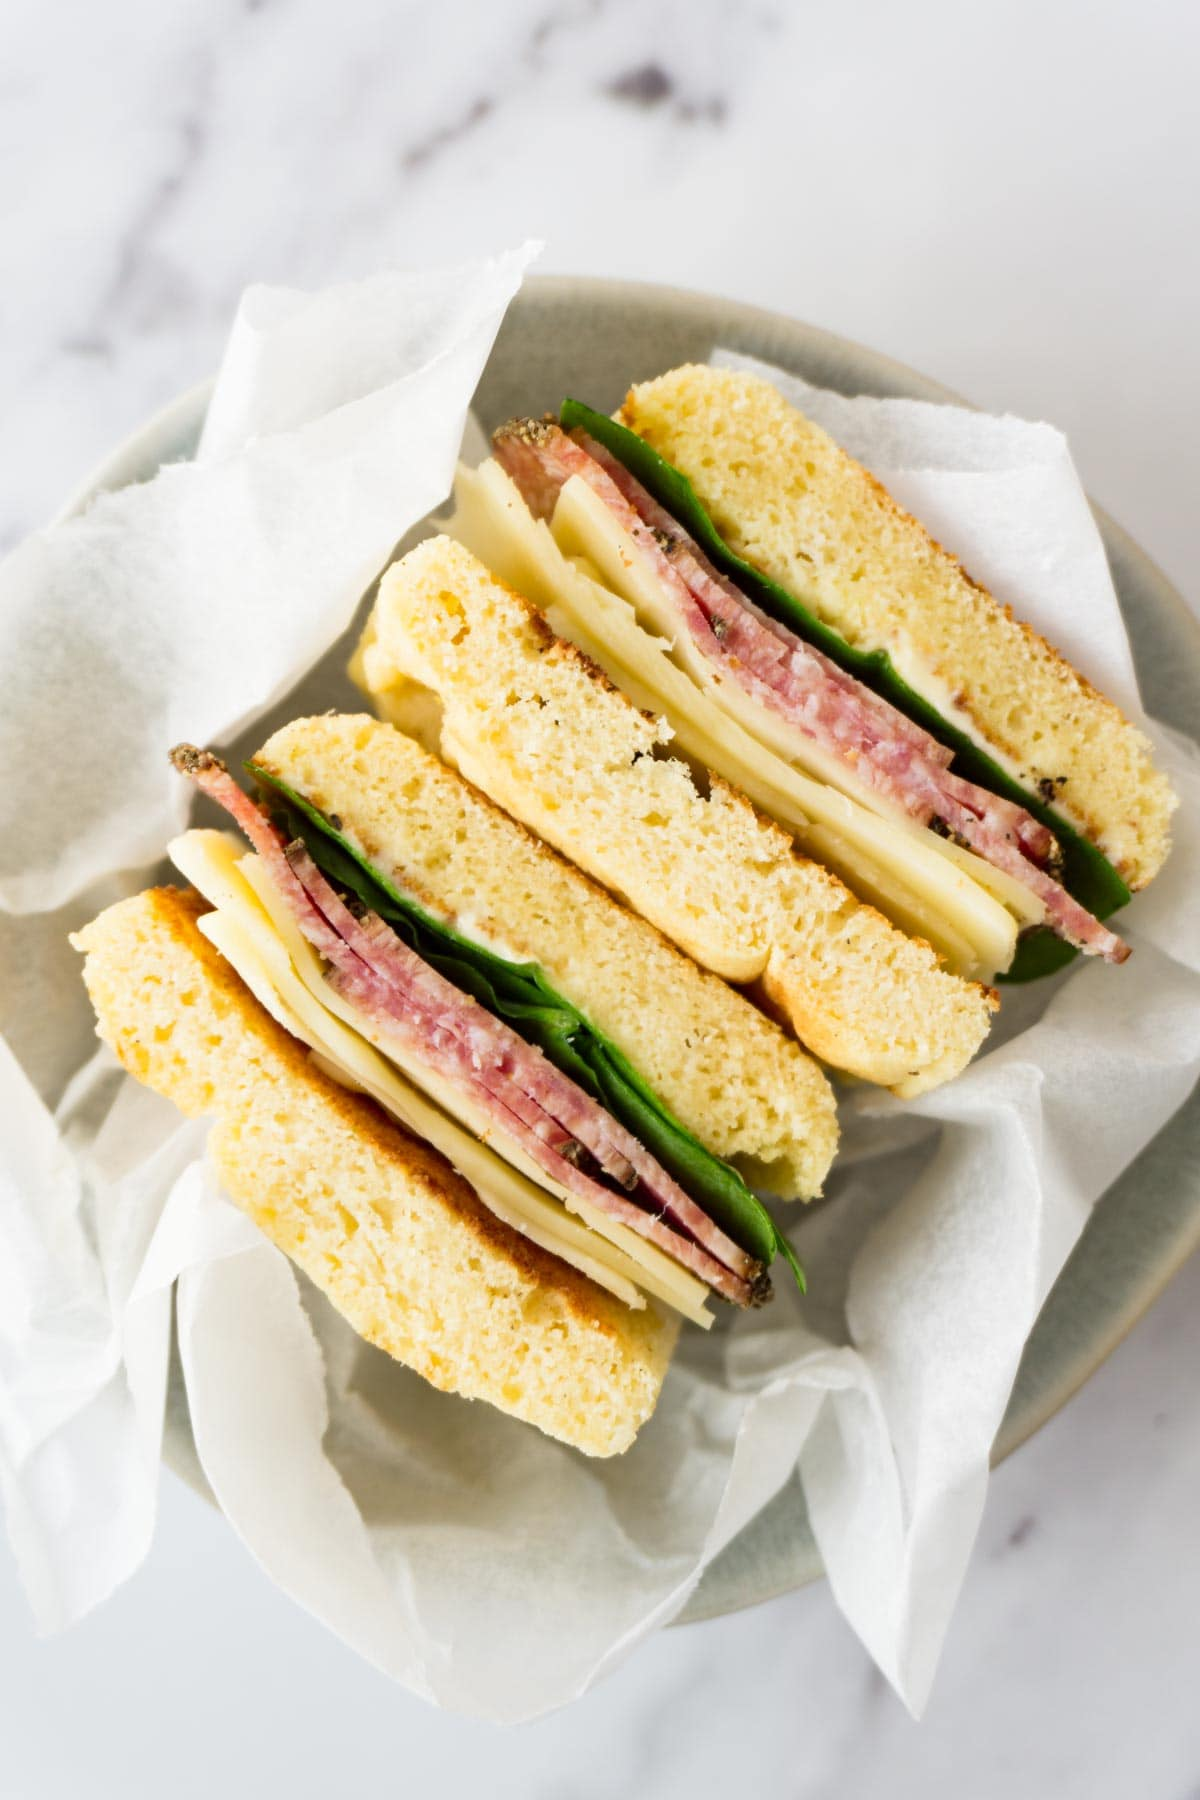 Two sandwiches with cheese, spinach, salami and keto bread in a small round bowl.